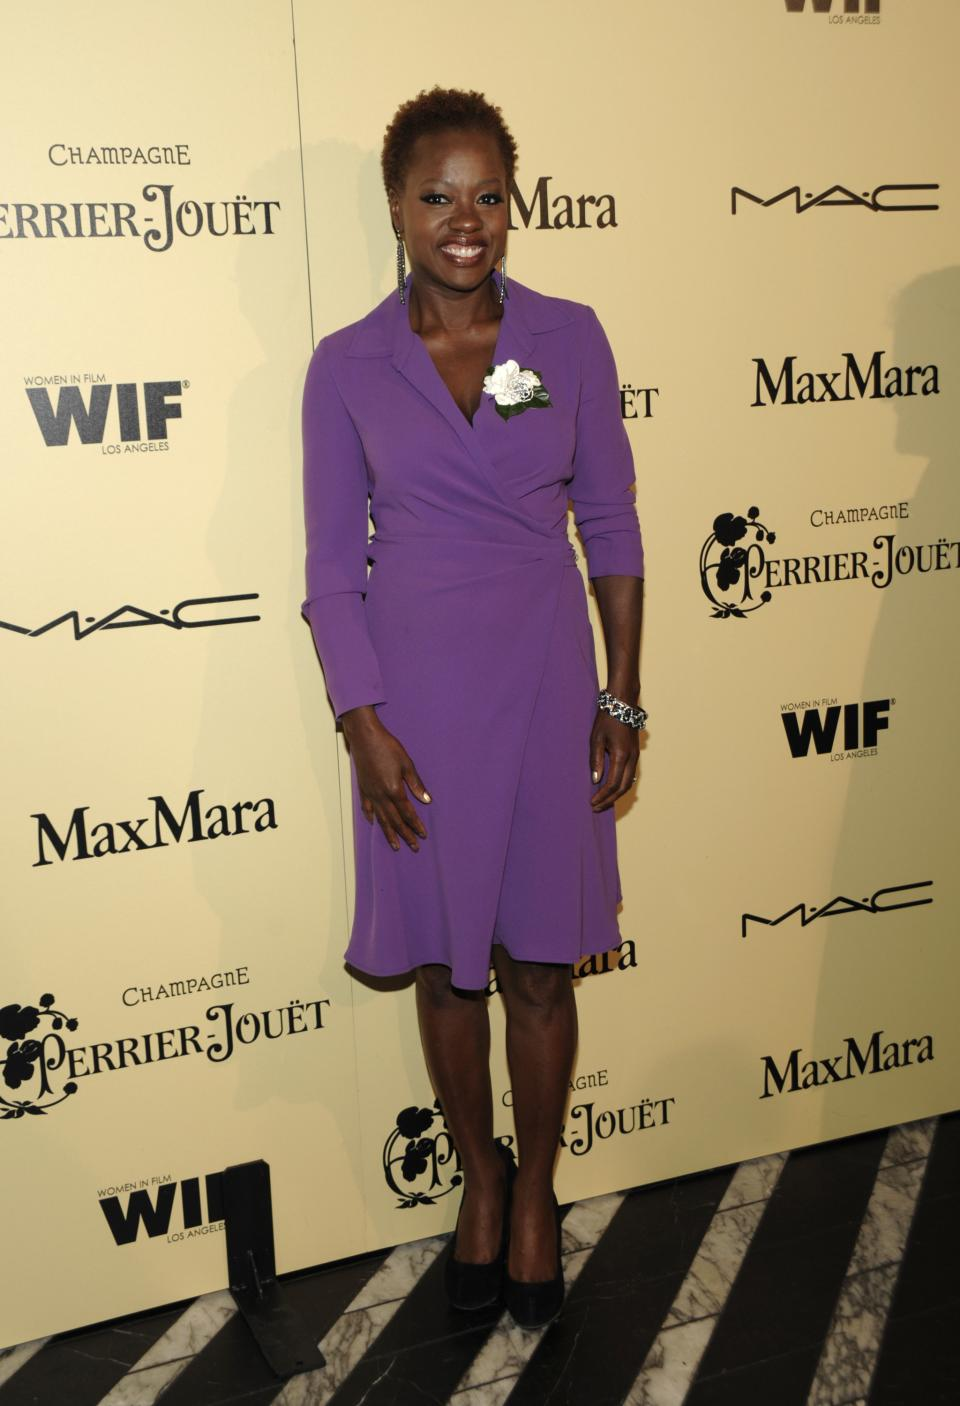 Actress Viola Davis arrives at the Women In Film 2012 Academy Award Party in West Hollywood, Calif. on Friday, Feb. 24, 2012. (AP Photo/Dan Steinberg)